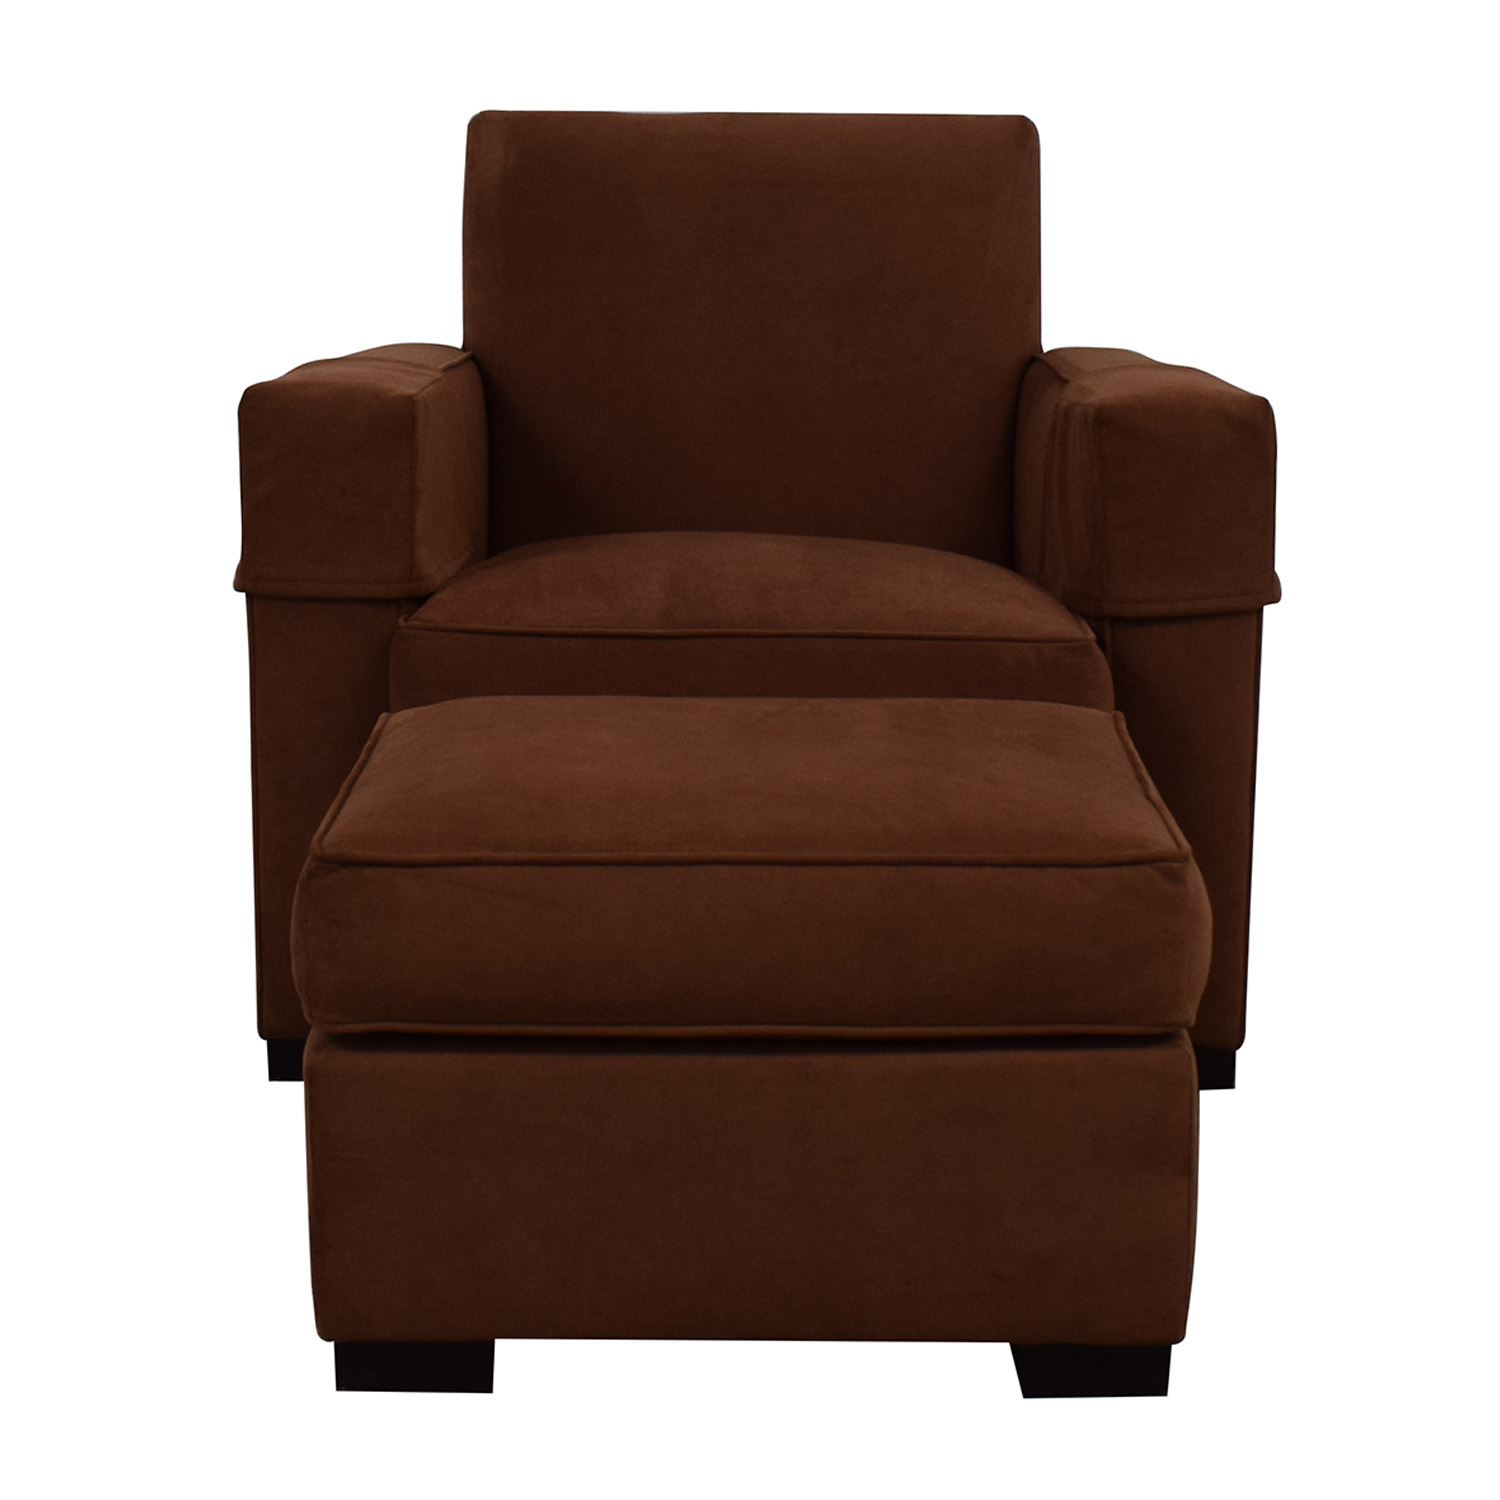 Hickory Chair Hickory Chair Ultra Suede Chair and Ottoman for sale